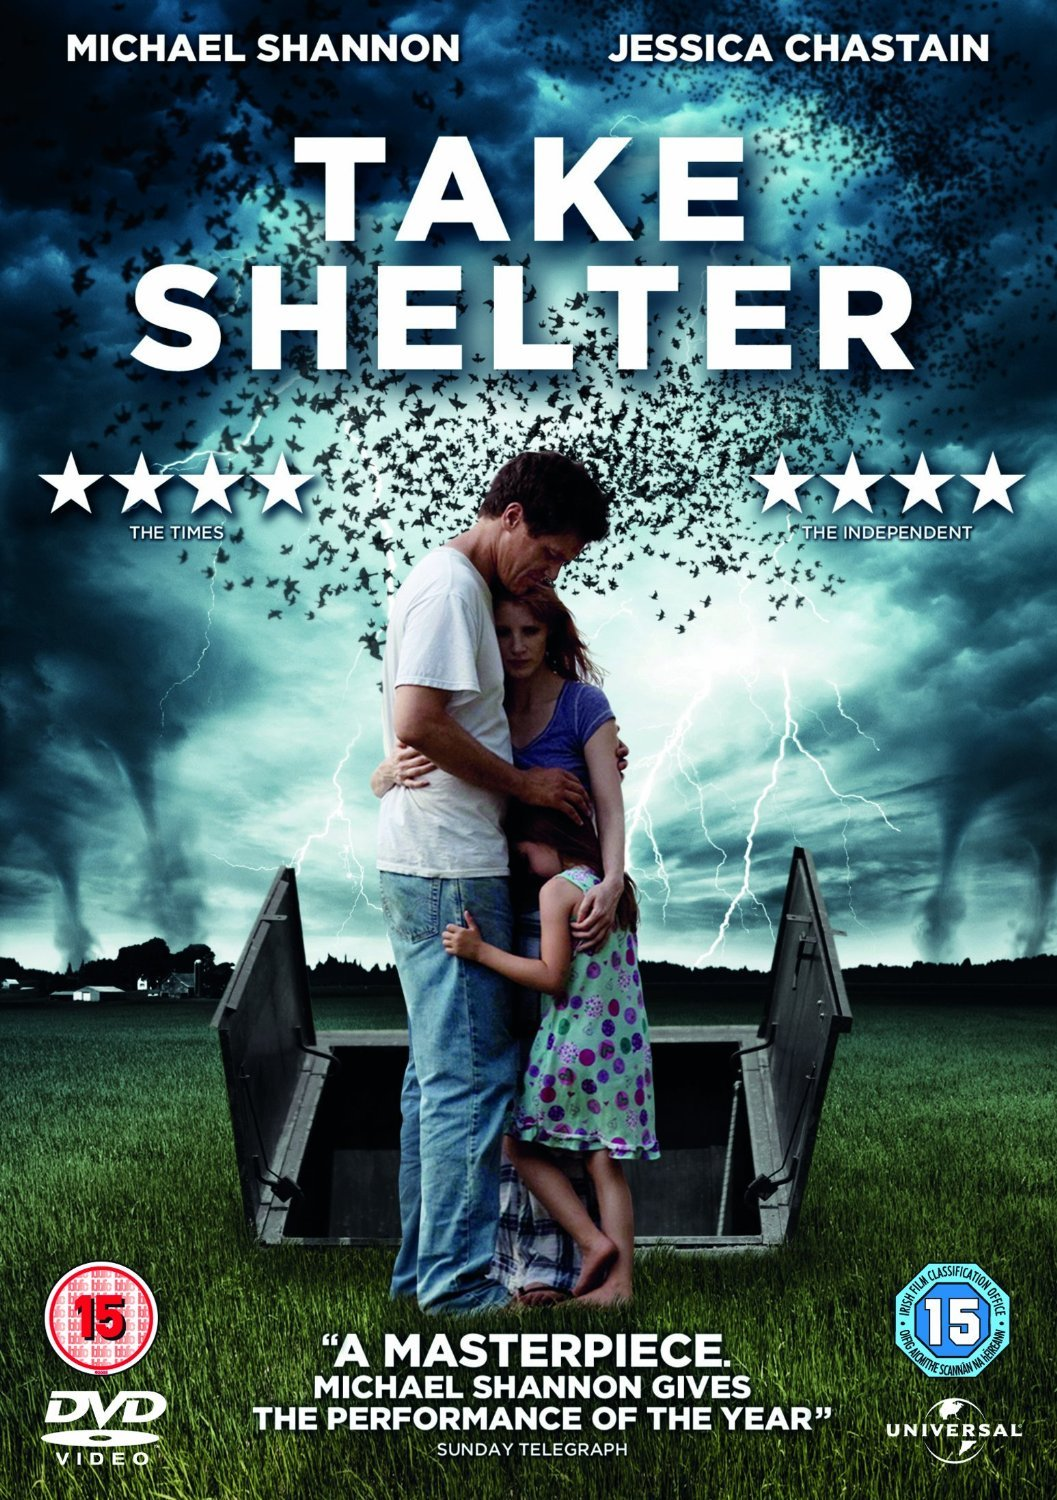 David Wingo: Take shelter